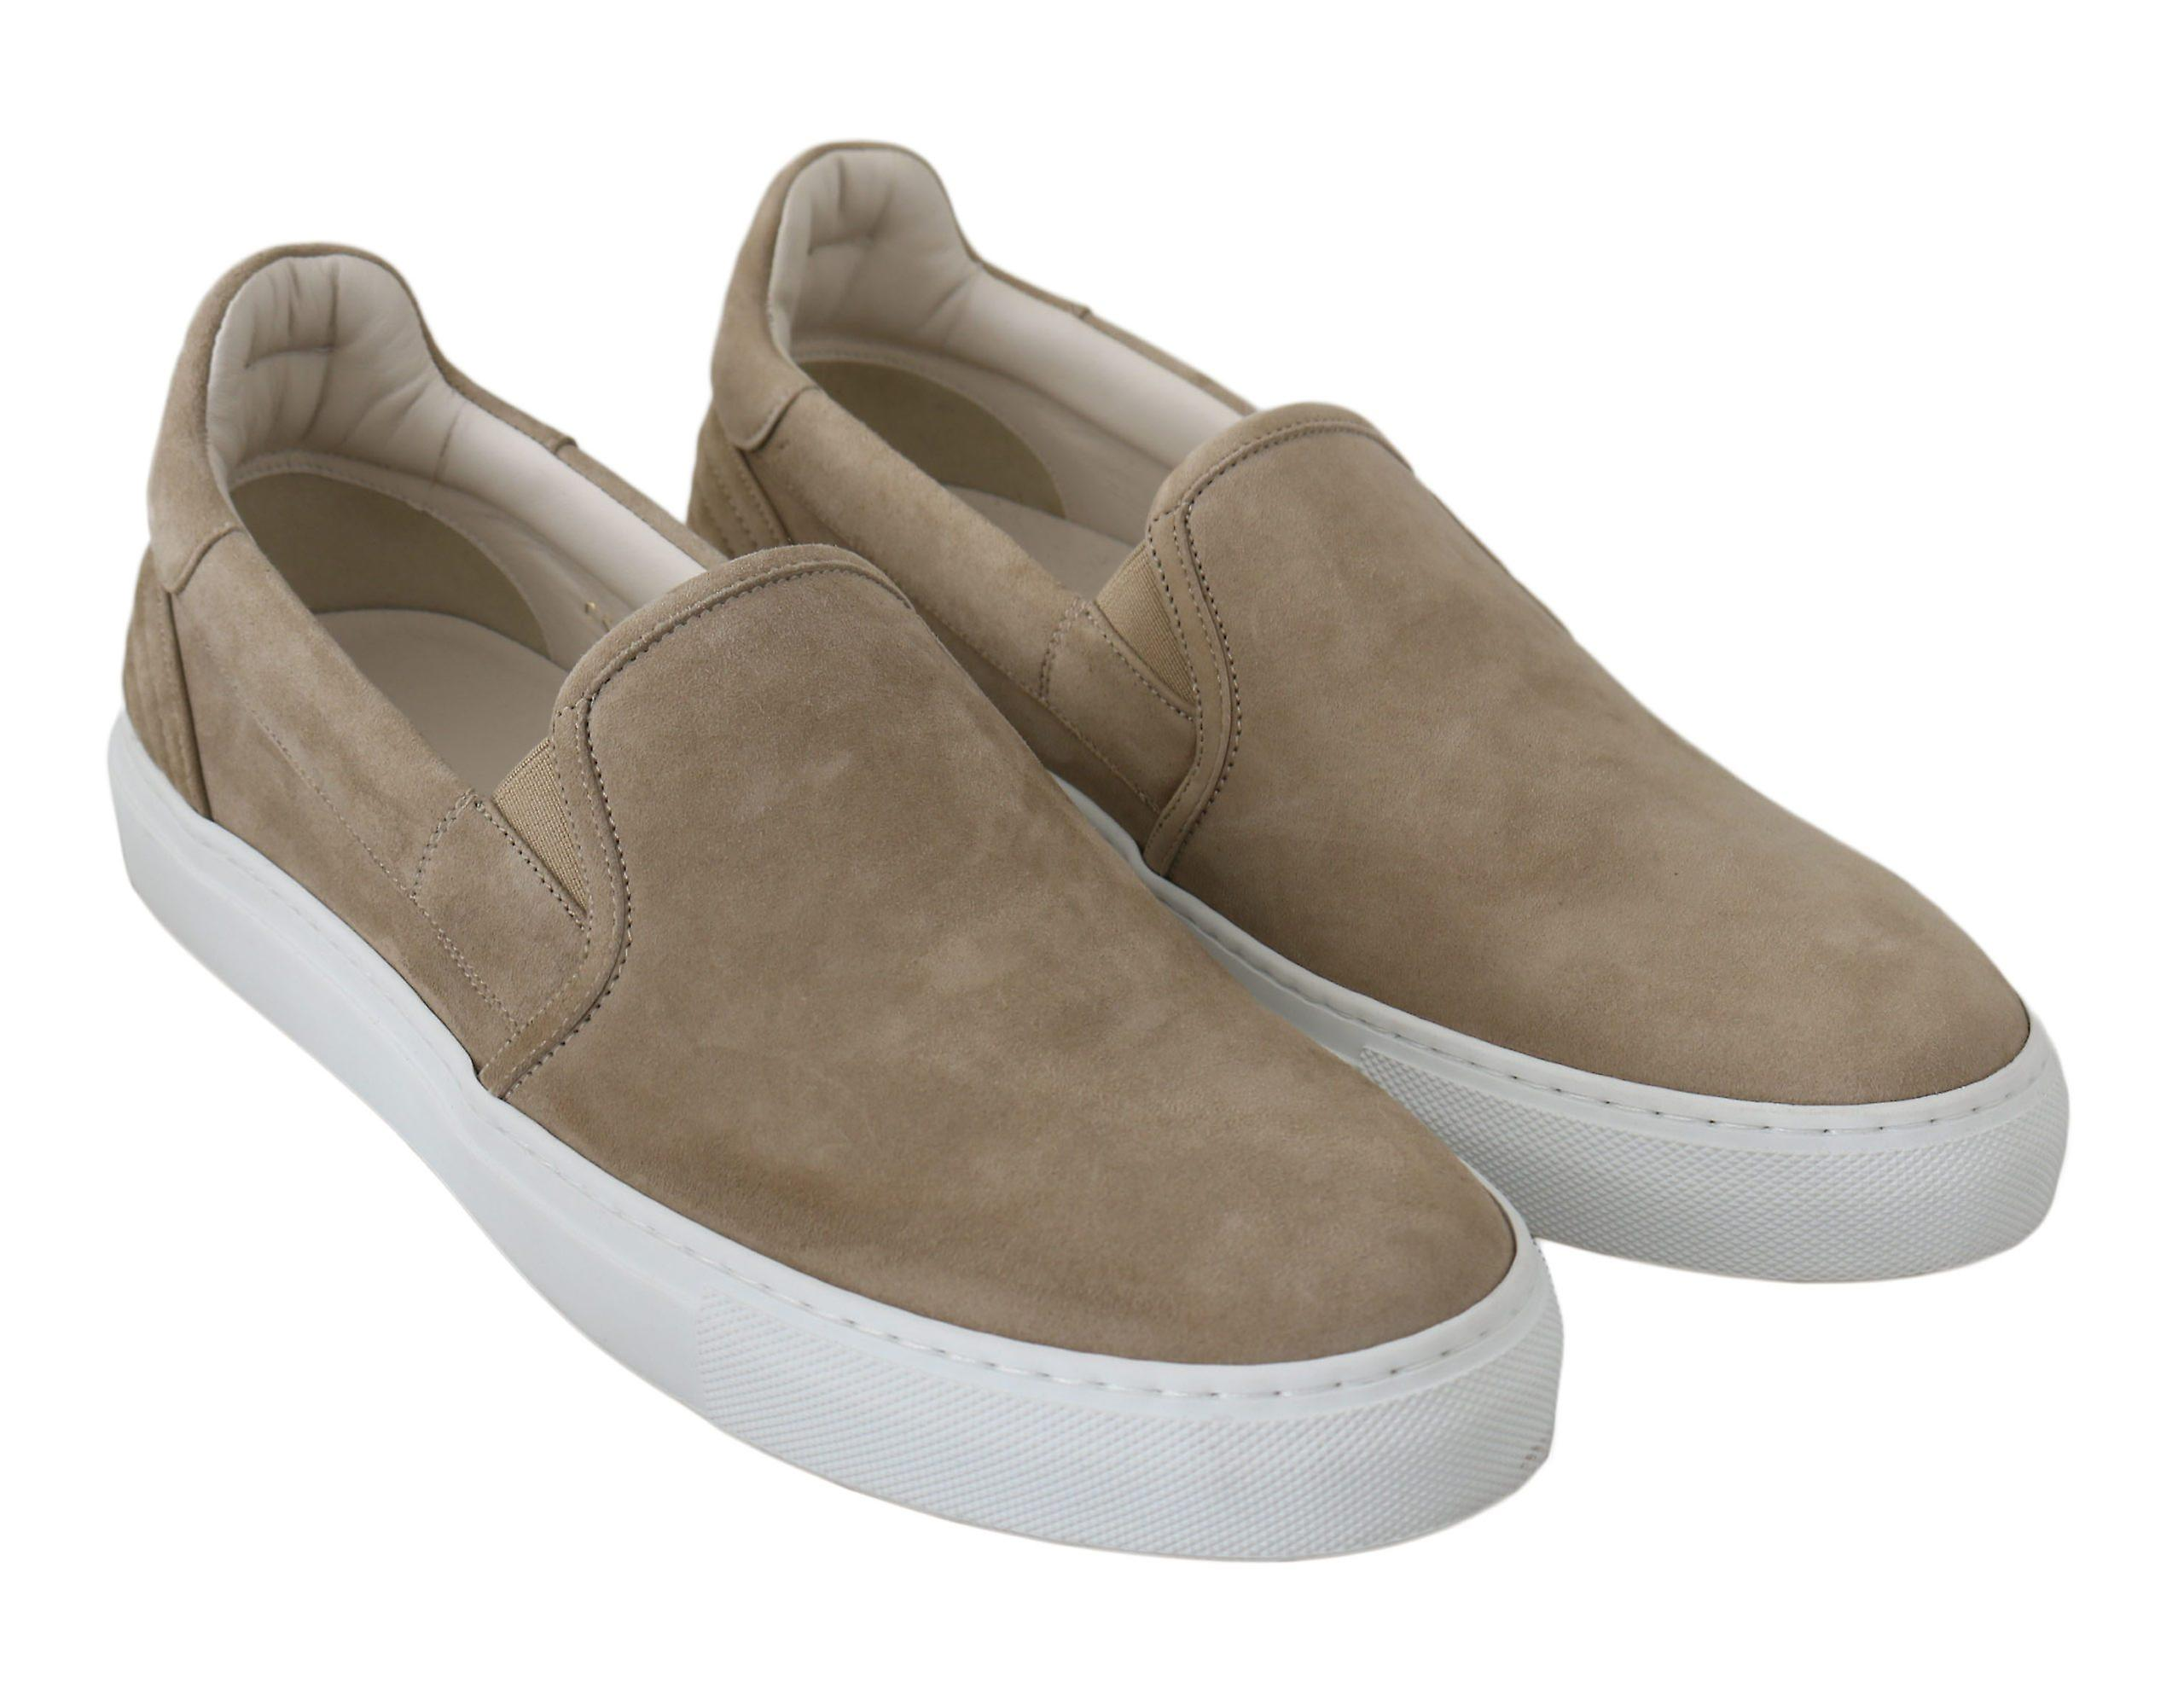 Dolce & Gabbana Beige Leather Suede Loafers Slip-Ons Shoes -- MV24466352 4bBmsZ